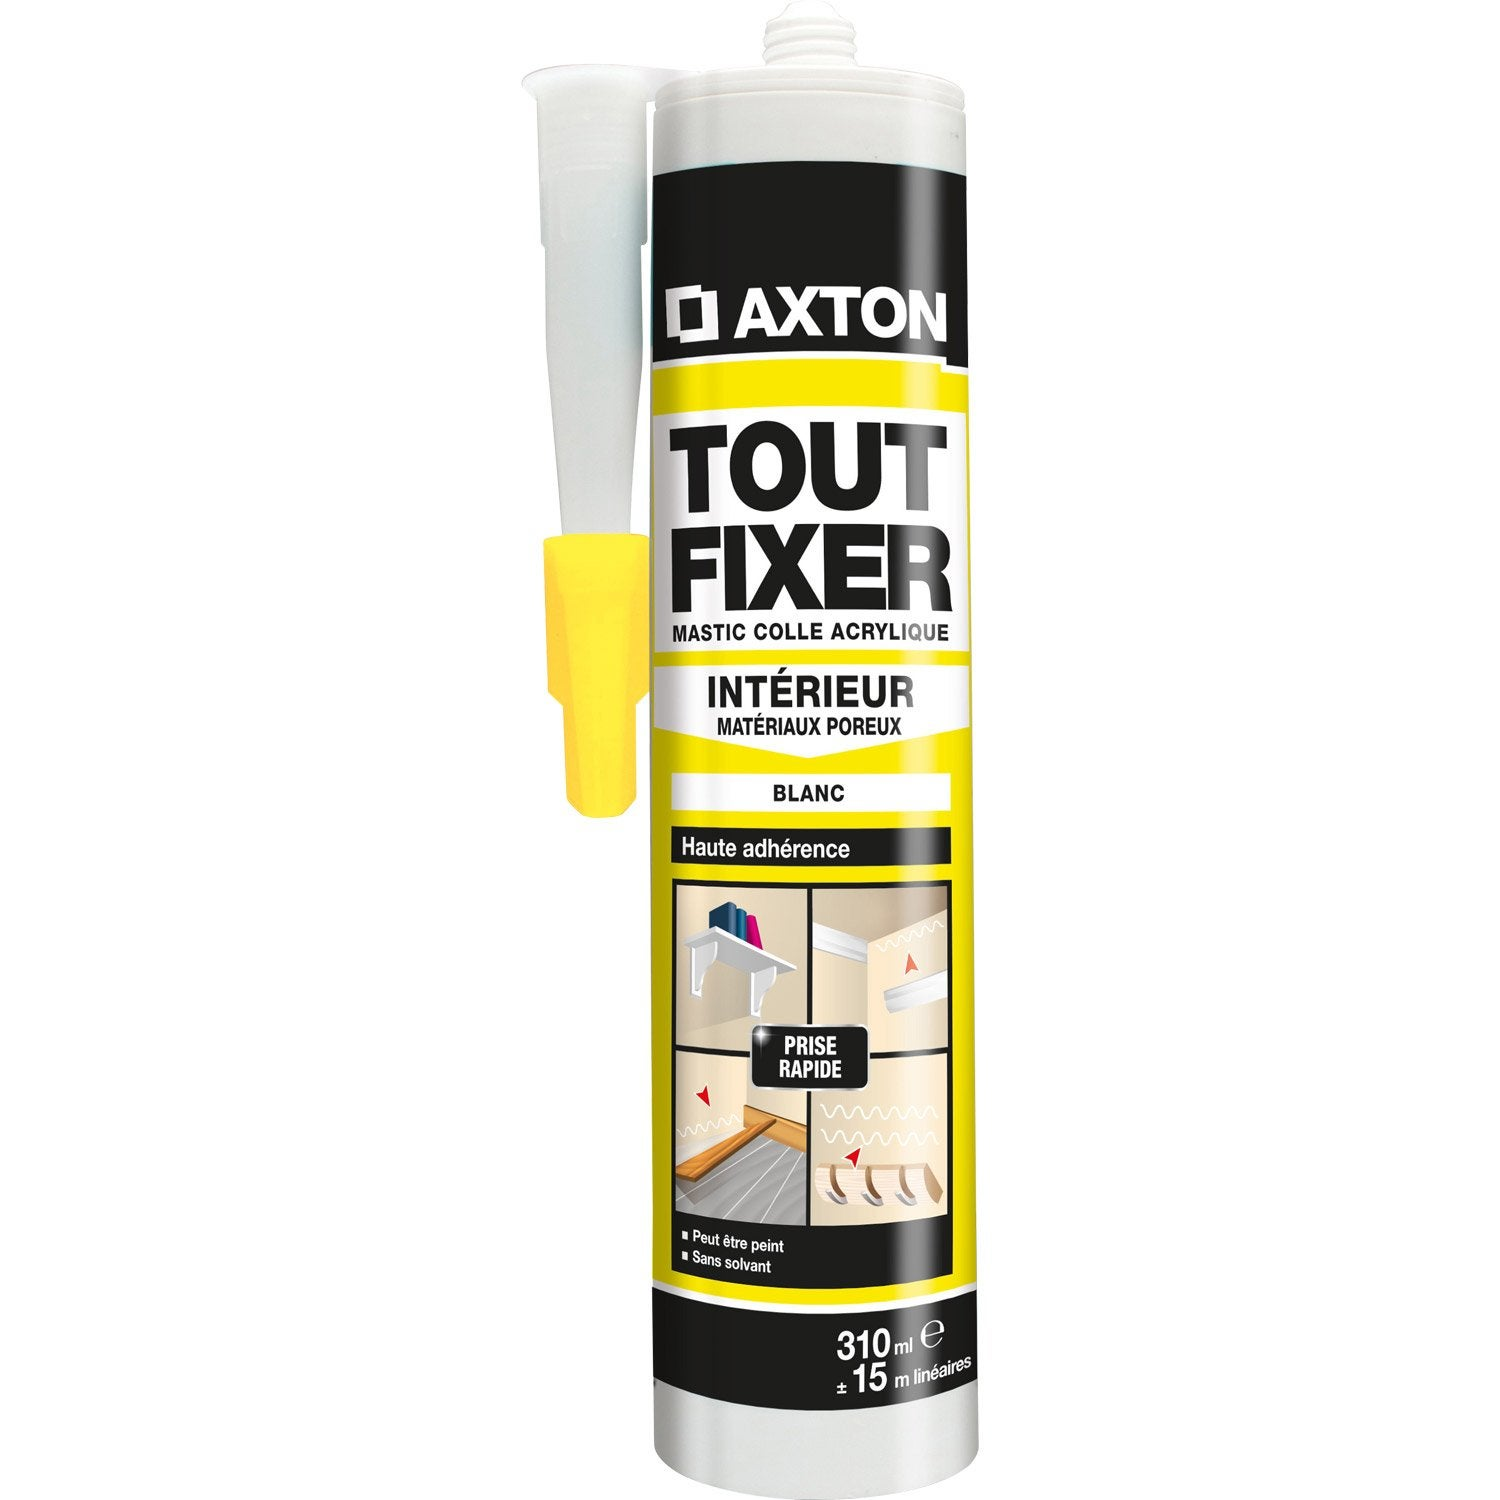 Colle mastic tout fixer axton 310 ml leroy merlin for Colle pour coller du carrelage sur du carrelage